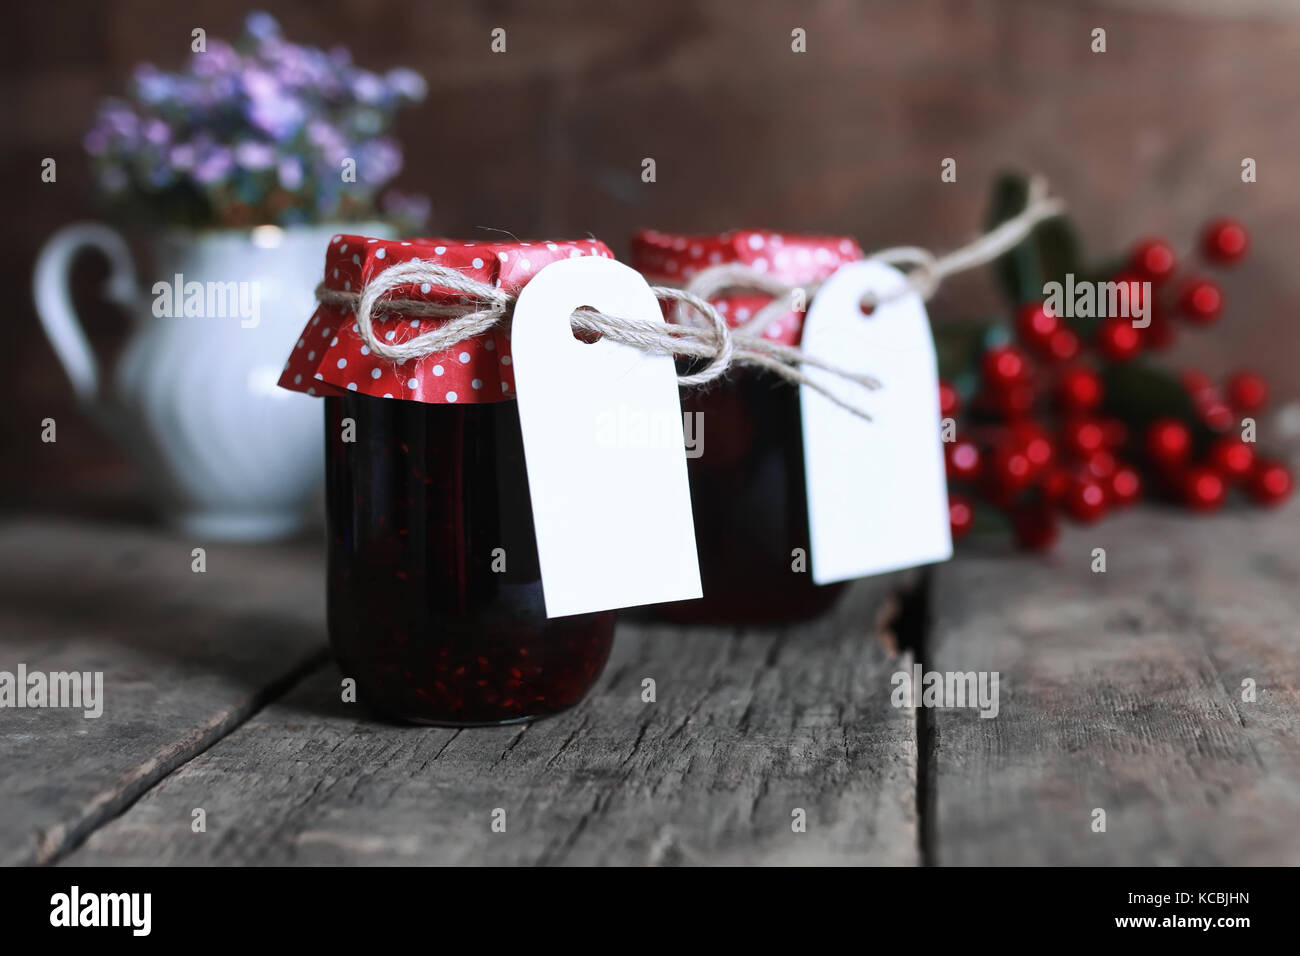 rustic homemade jam jar wooden background and flower - Stock Image